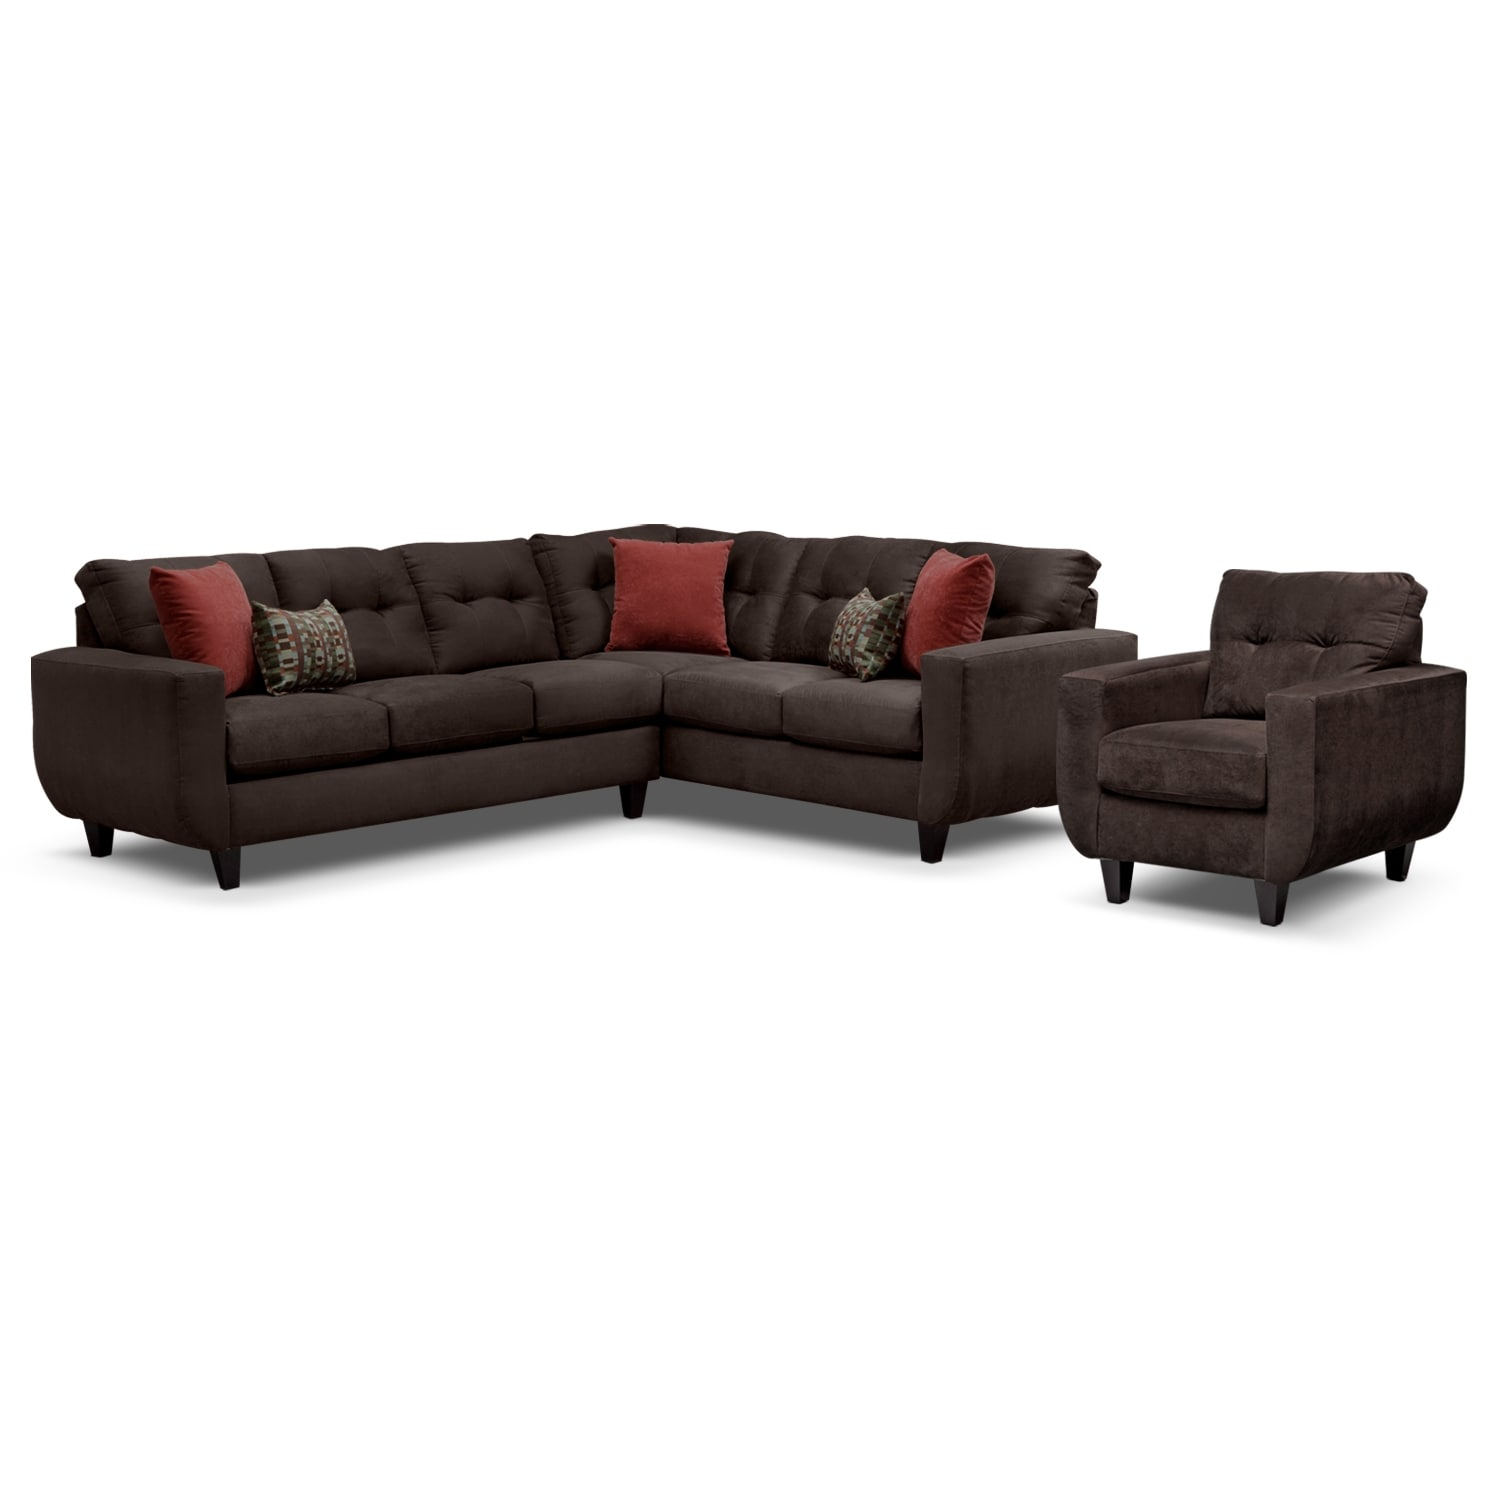 Living Room Furniture - West Village Chocolate II 2 Pc. Sectional and Chair